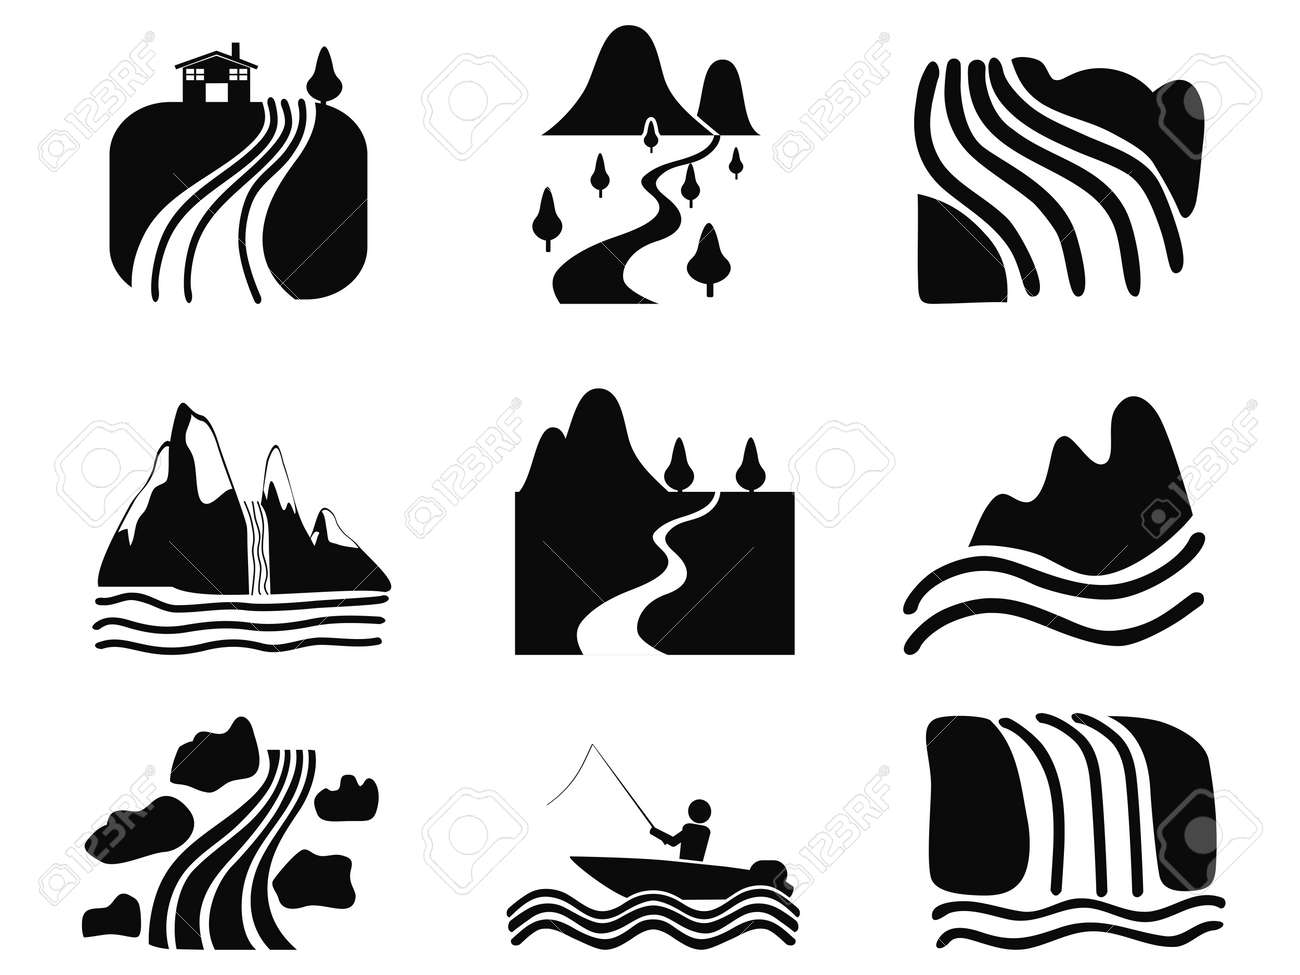 isolated black river icons set on white background royalty free cliparts vectors and stock illustration image 48420924 isolated black river icons set on white background